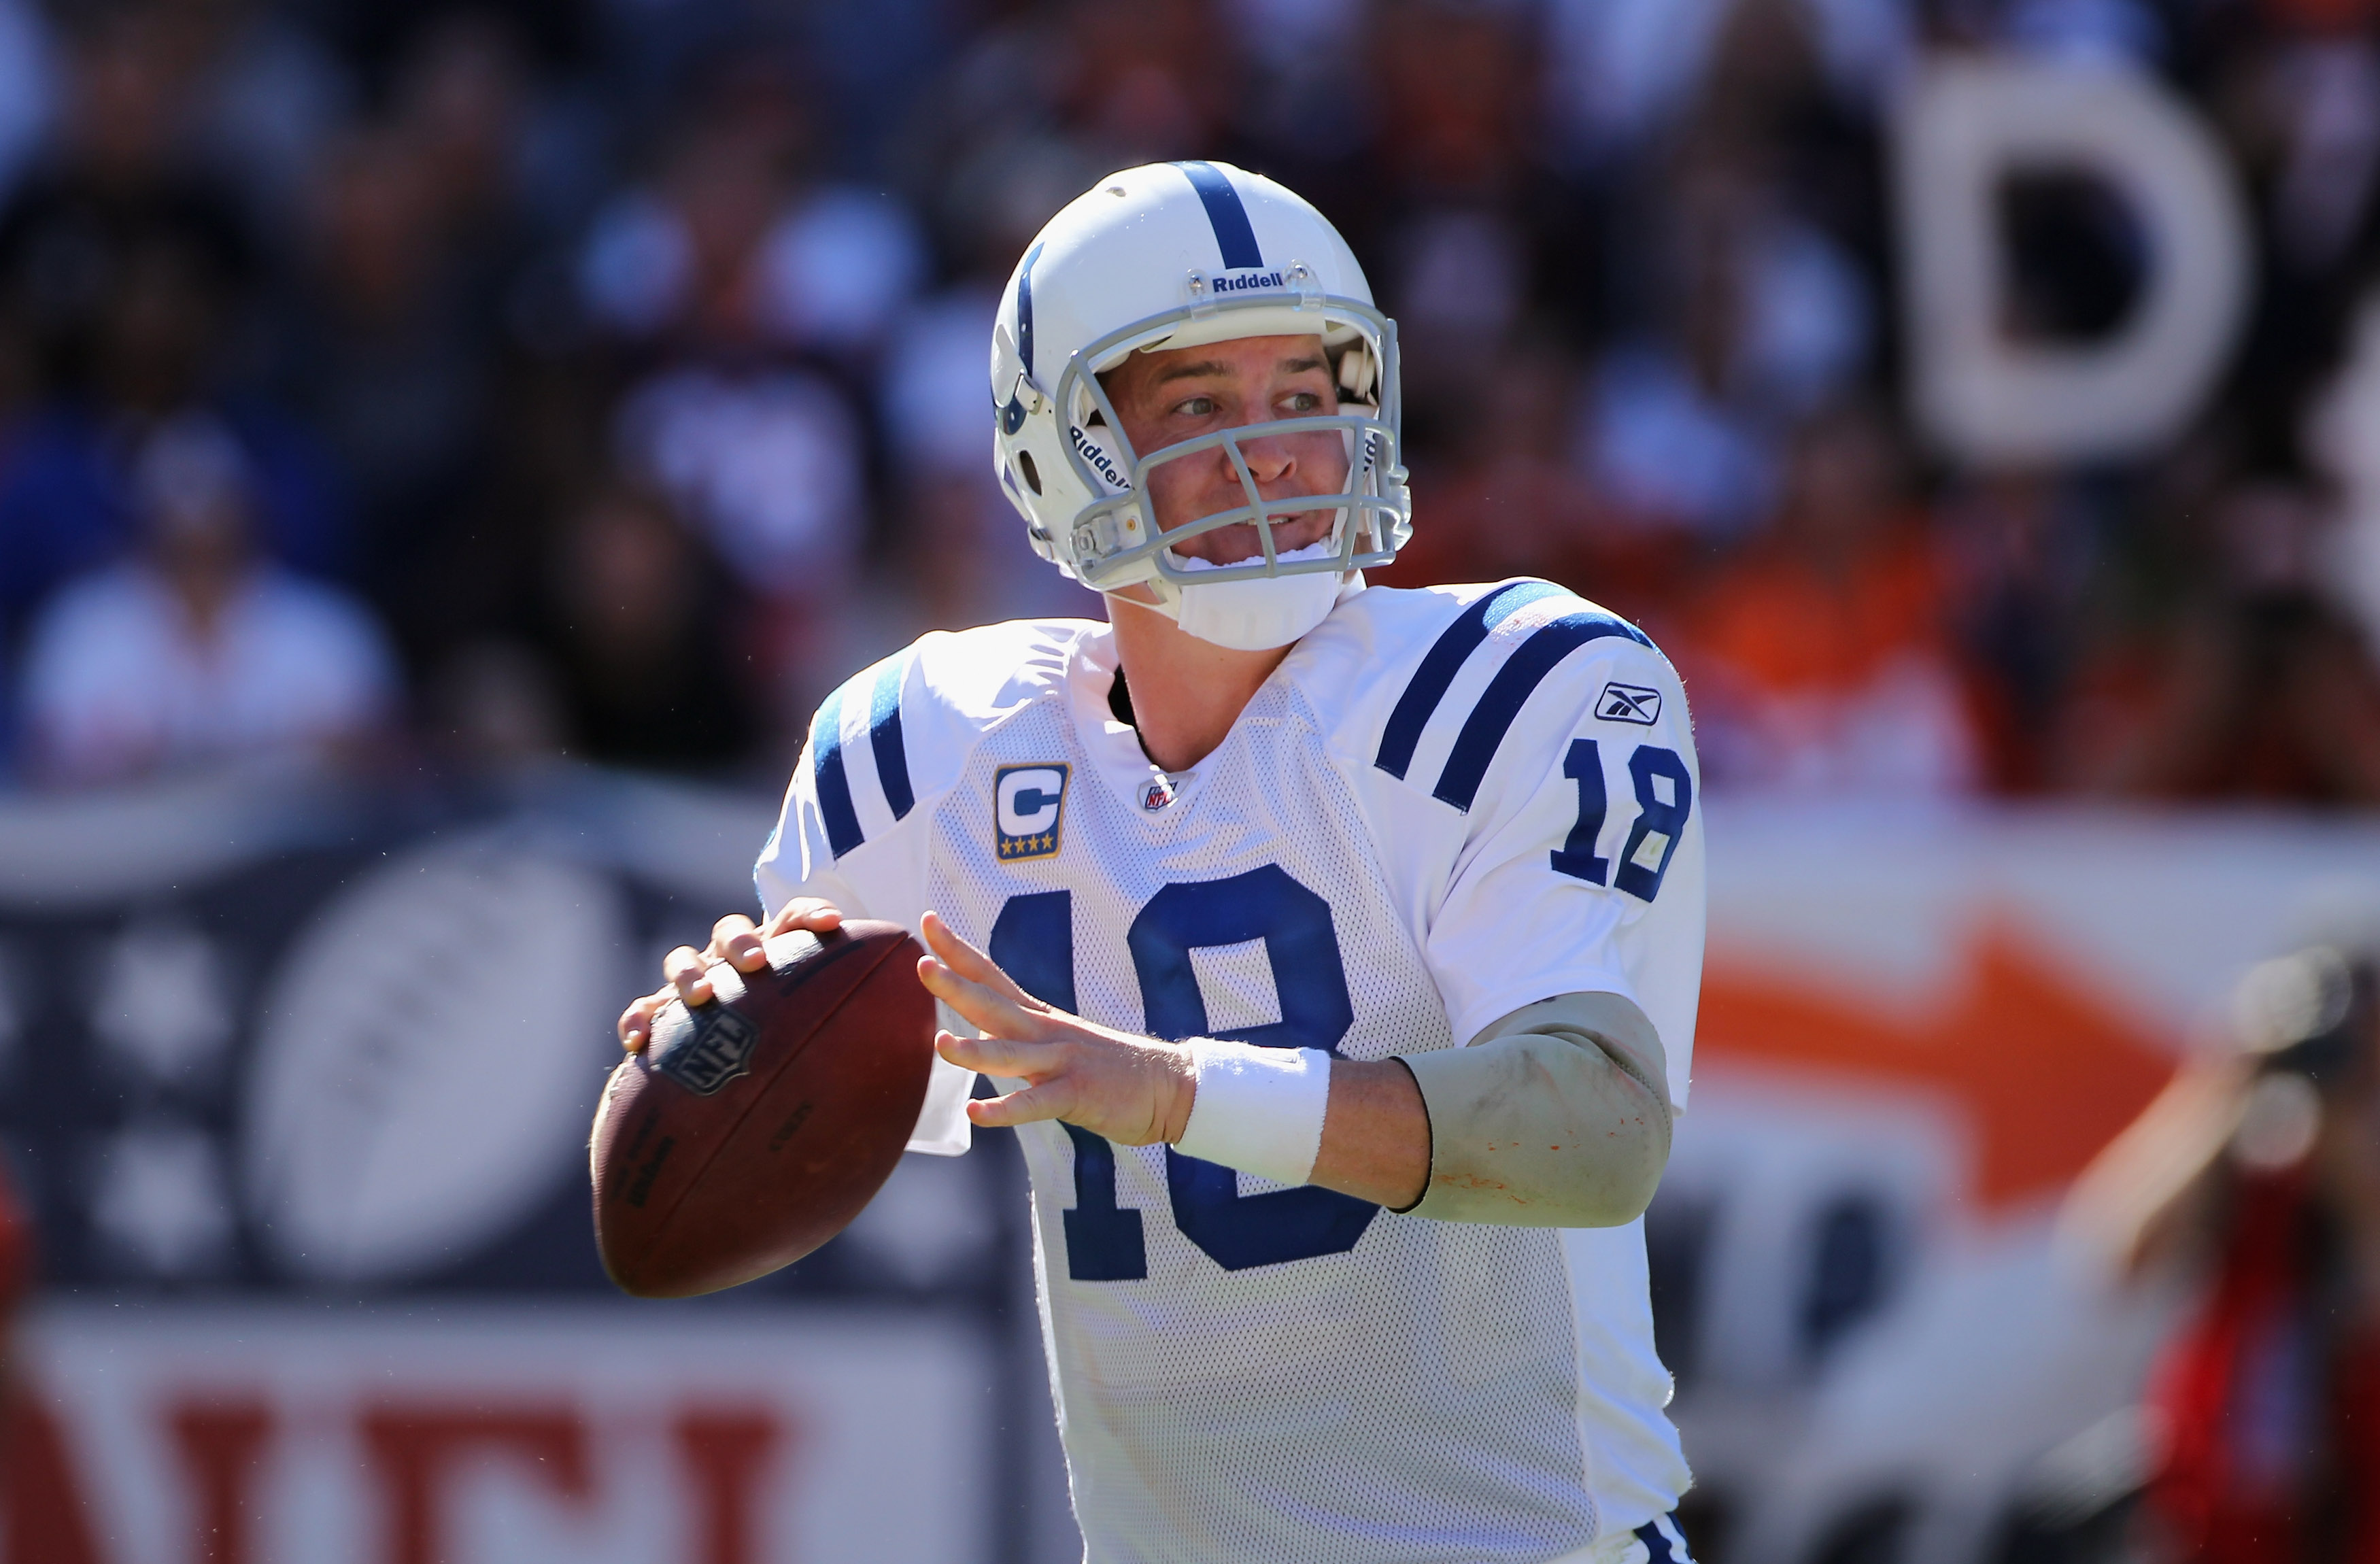 DENVER - SEPTEMBER 26:  Quarterback Peyton Manning #18 of the Indianapolis Colts drops back to pass against the Denver Broncos at INVESCO Field at Mile High on September 26, 2010 in Denver, Colorado.  (Photo by Doug Pensinger/Getty Images)